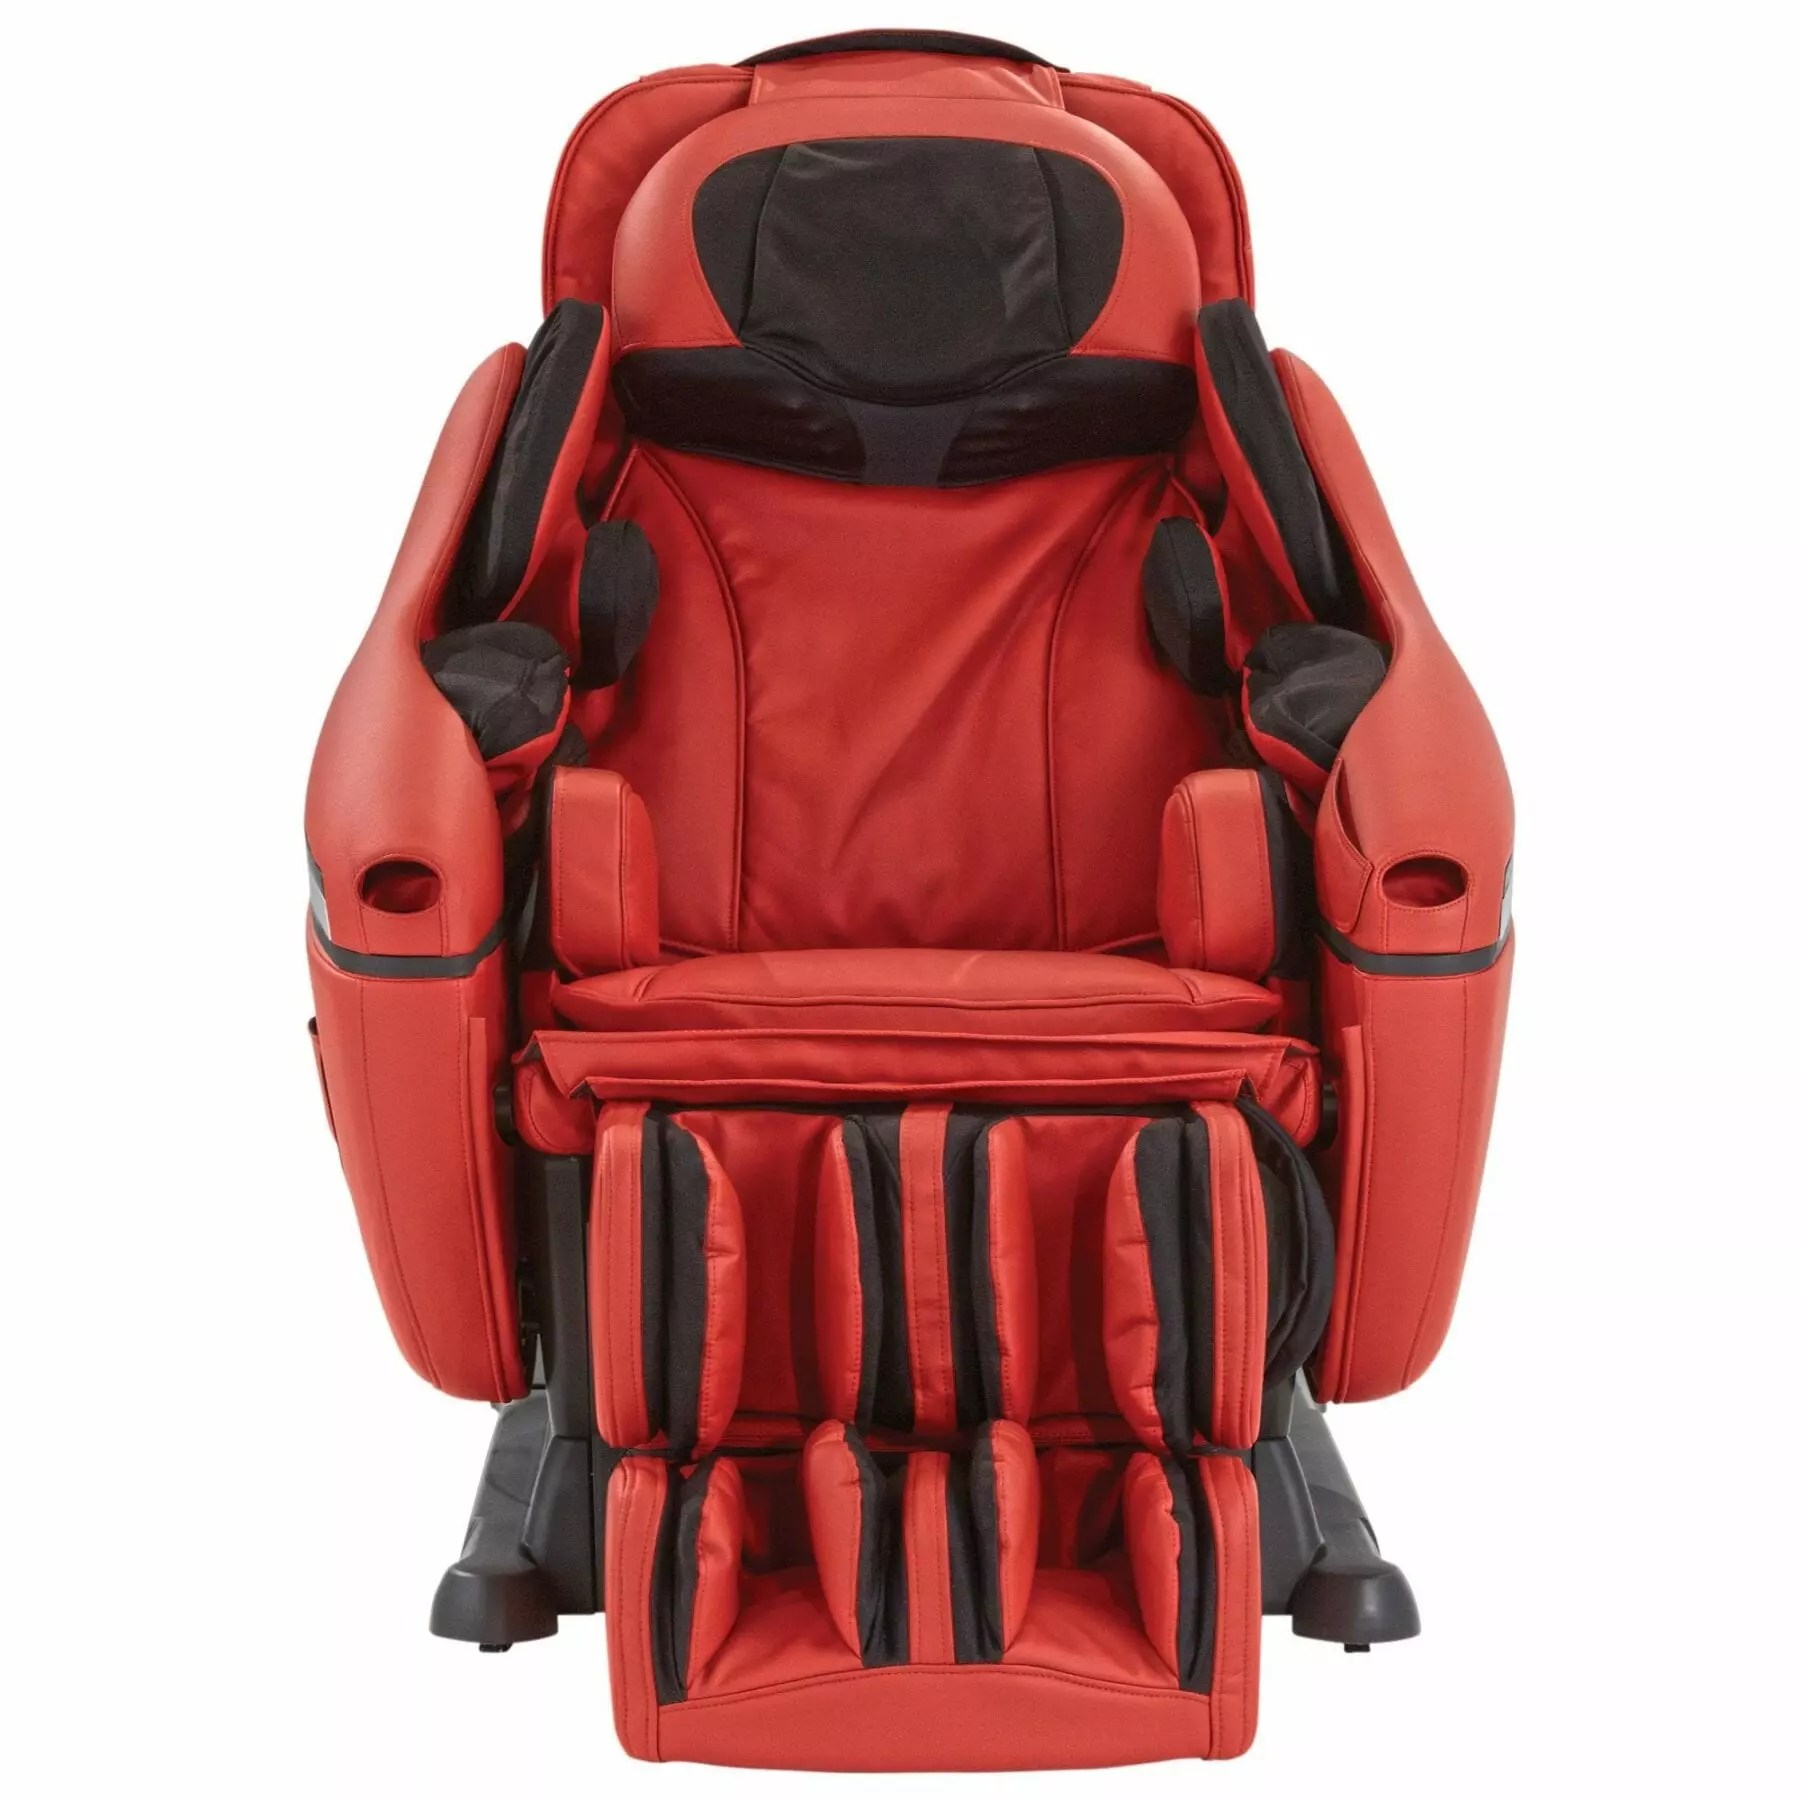 kawaii massage chair a s rental red